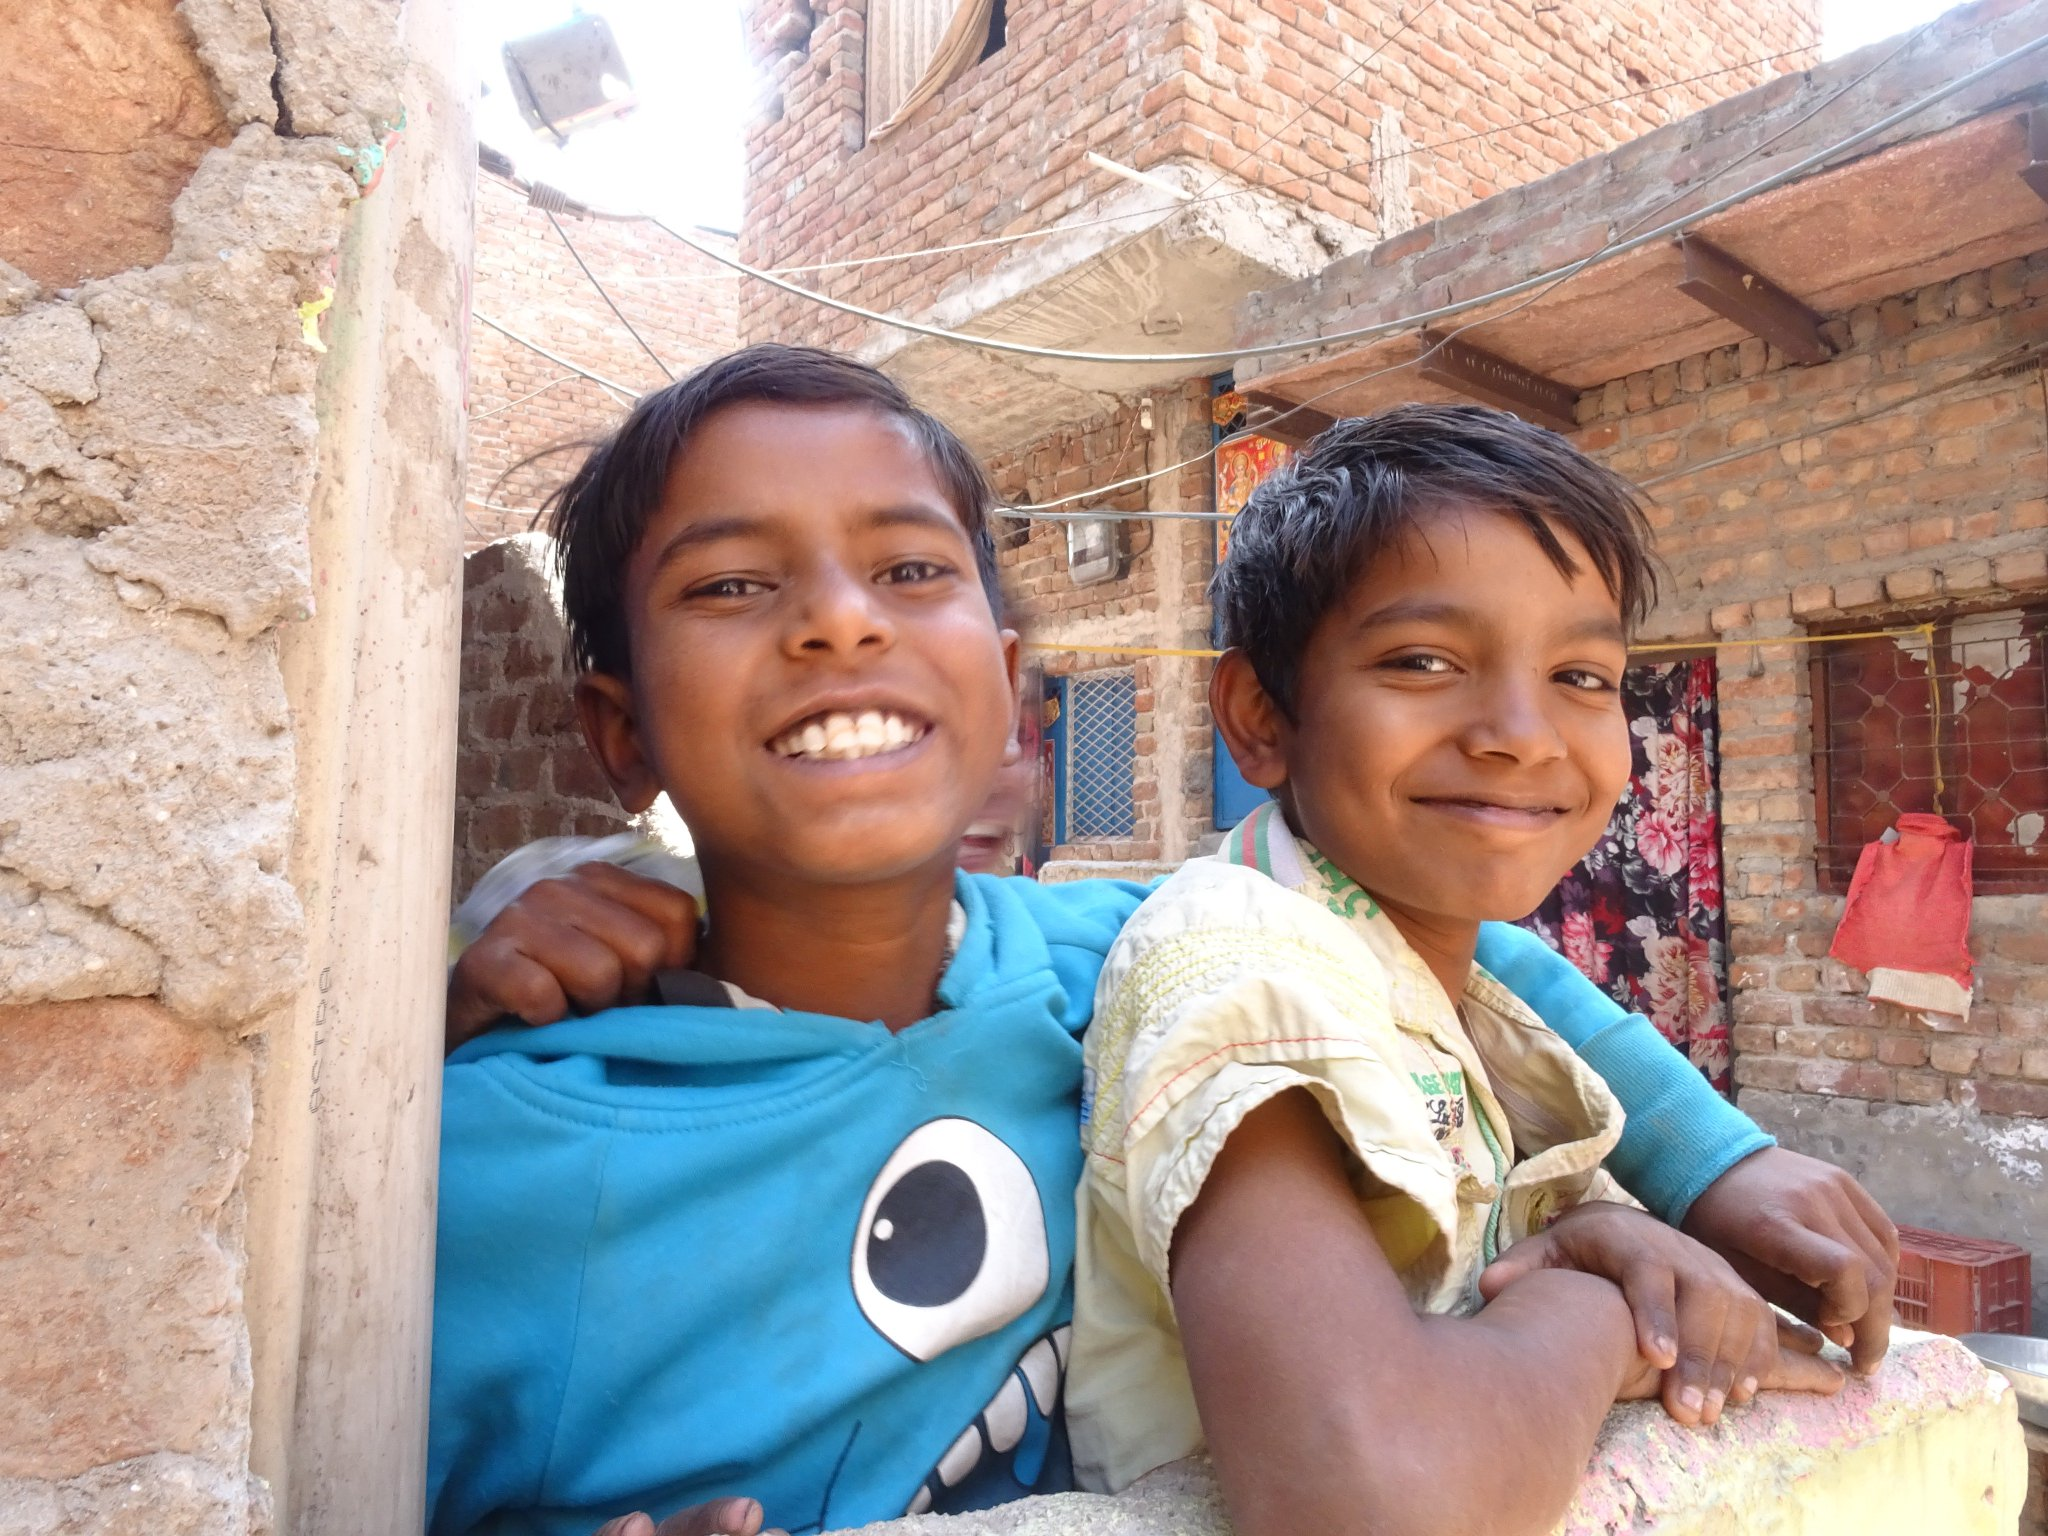 Happy Home is where you can find a BIG SMILE.  #HabitatYLB @habitatindia https://t.co/w5N1LH3eJO